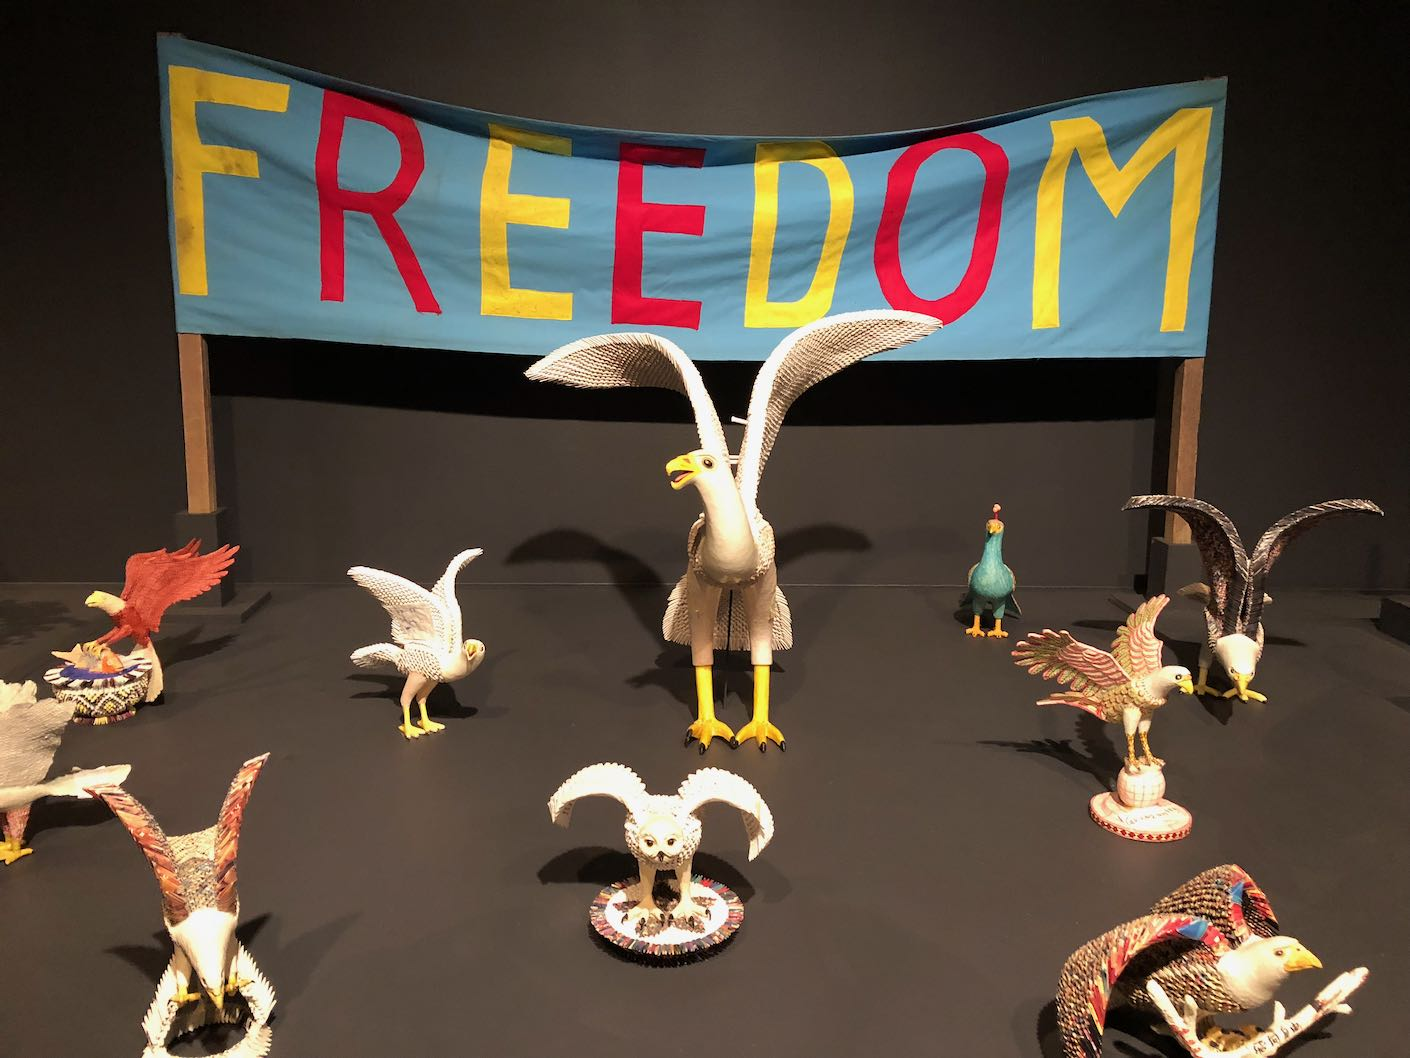 Models of birds in front of a banner reading 'Freedom'.